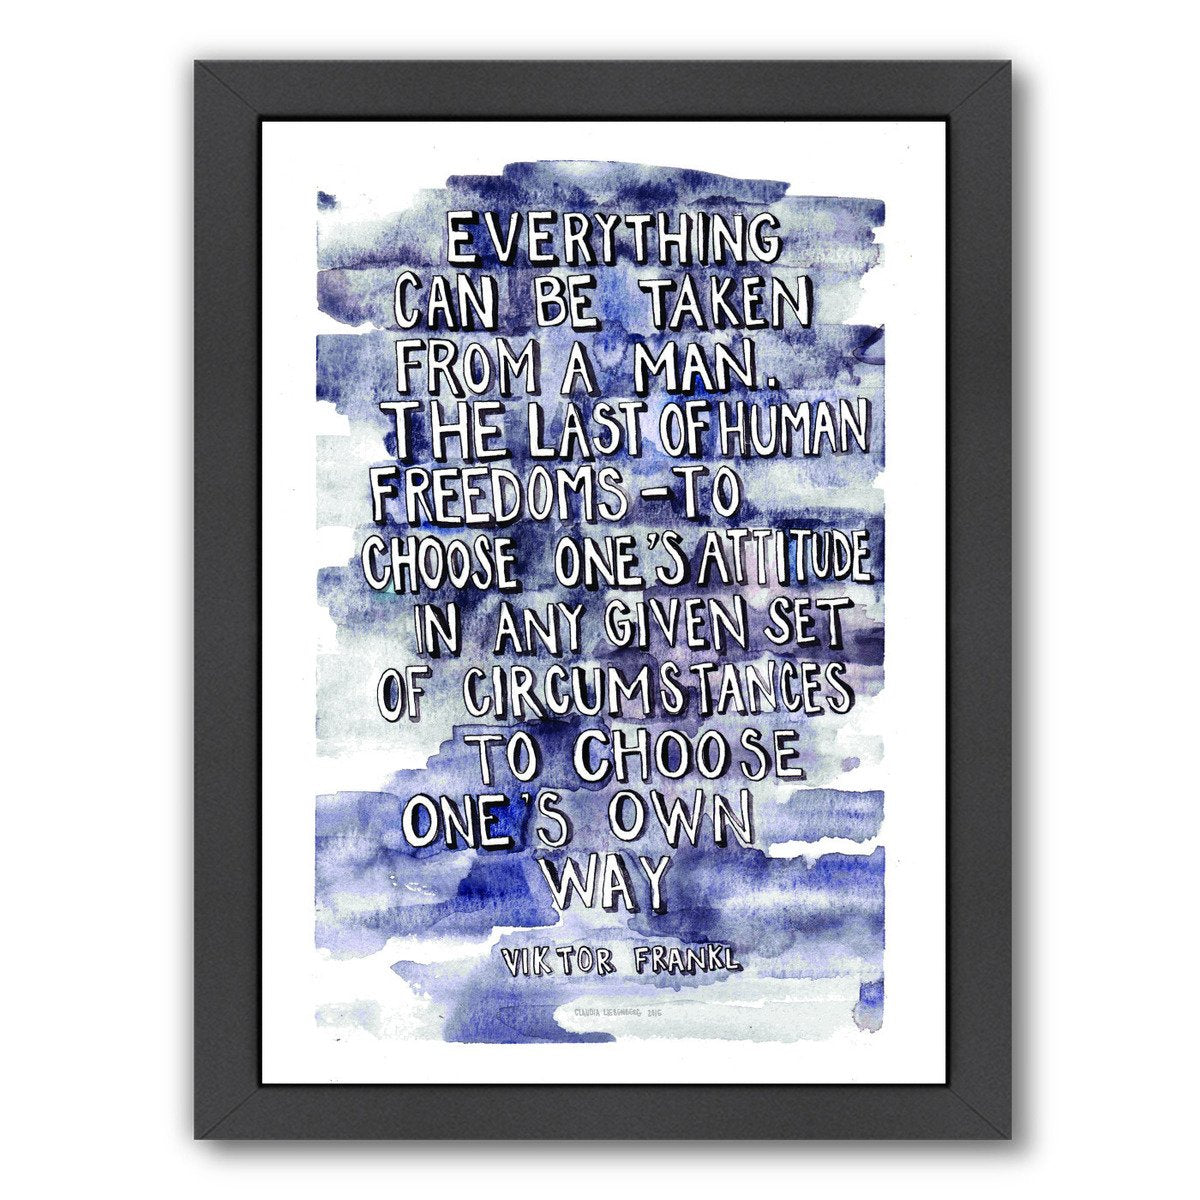 Viktor Frankl by Claudia Liebenberg Framed Print - Wall Art - Americanflat